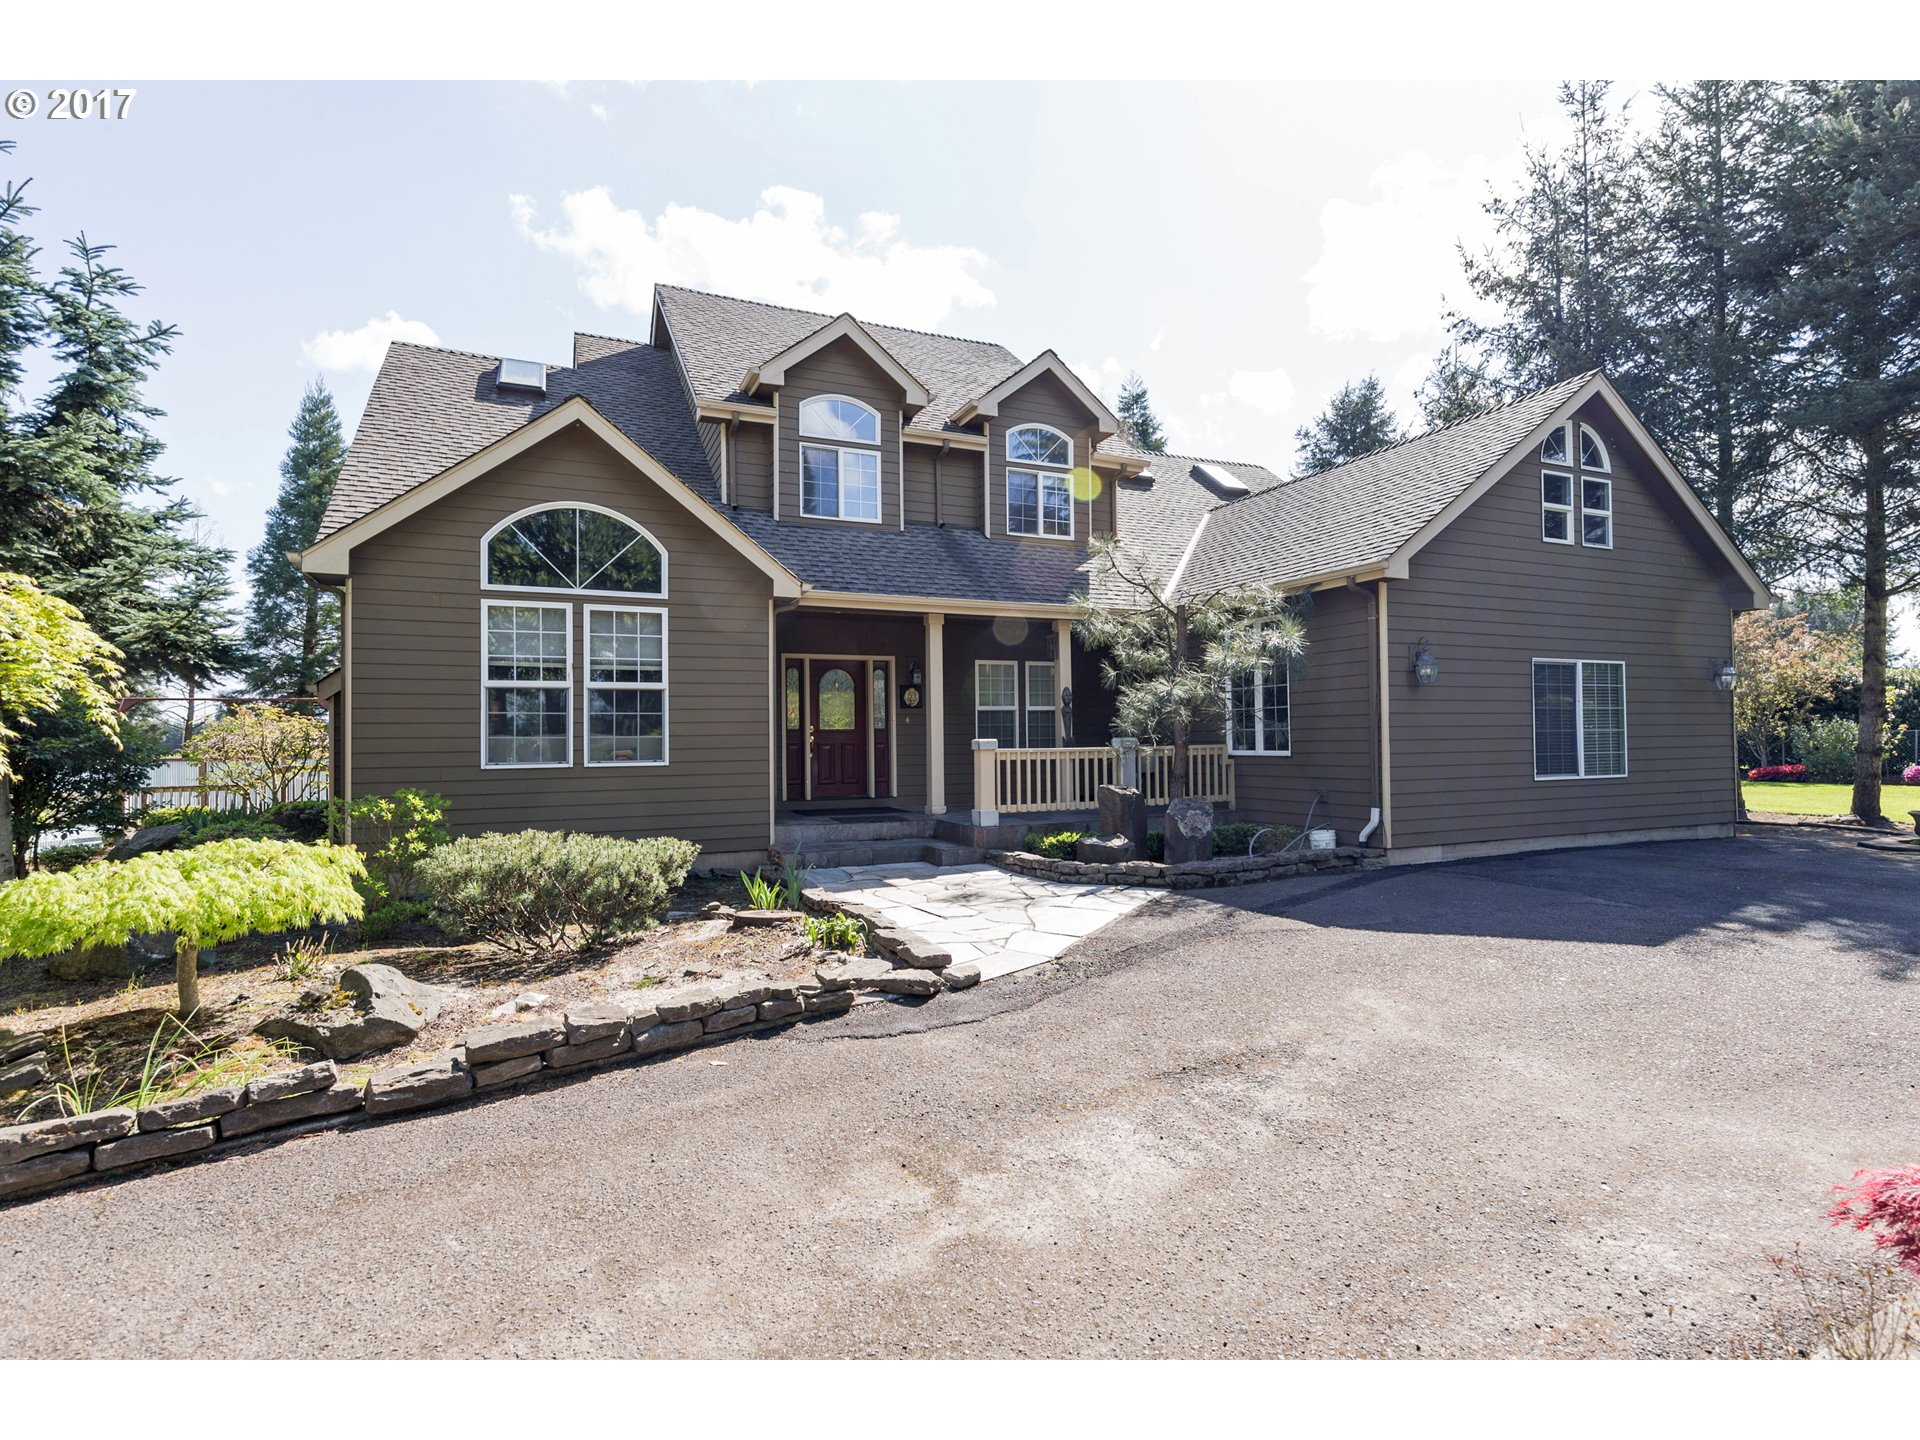 8784 S HEINZ RD, Canby, OR 97013